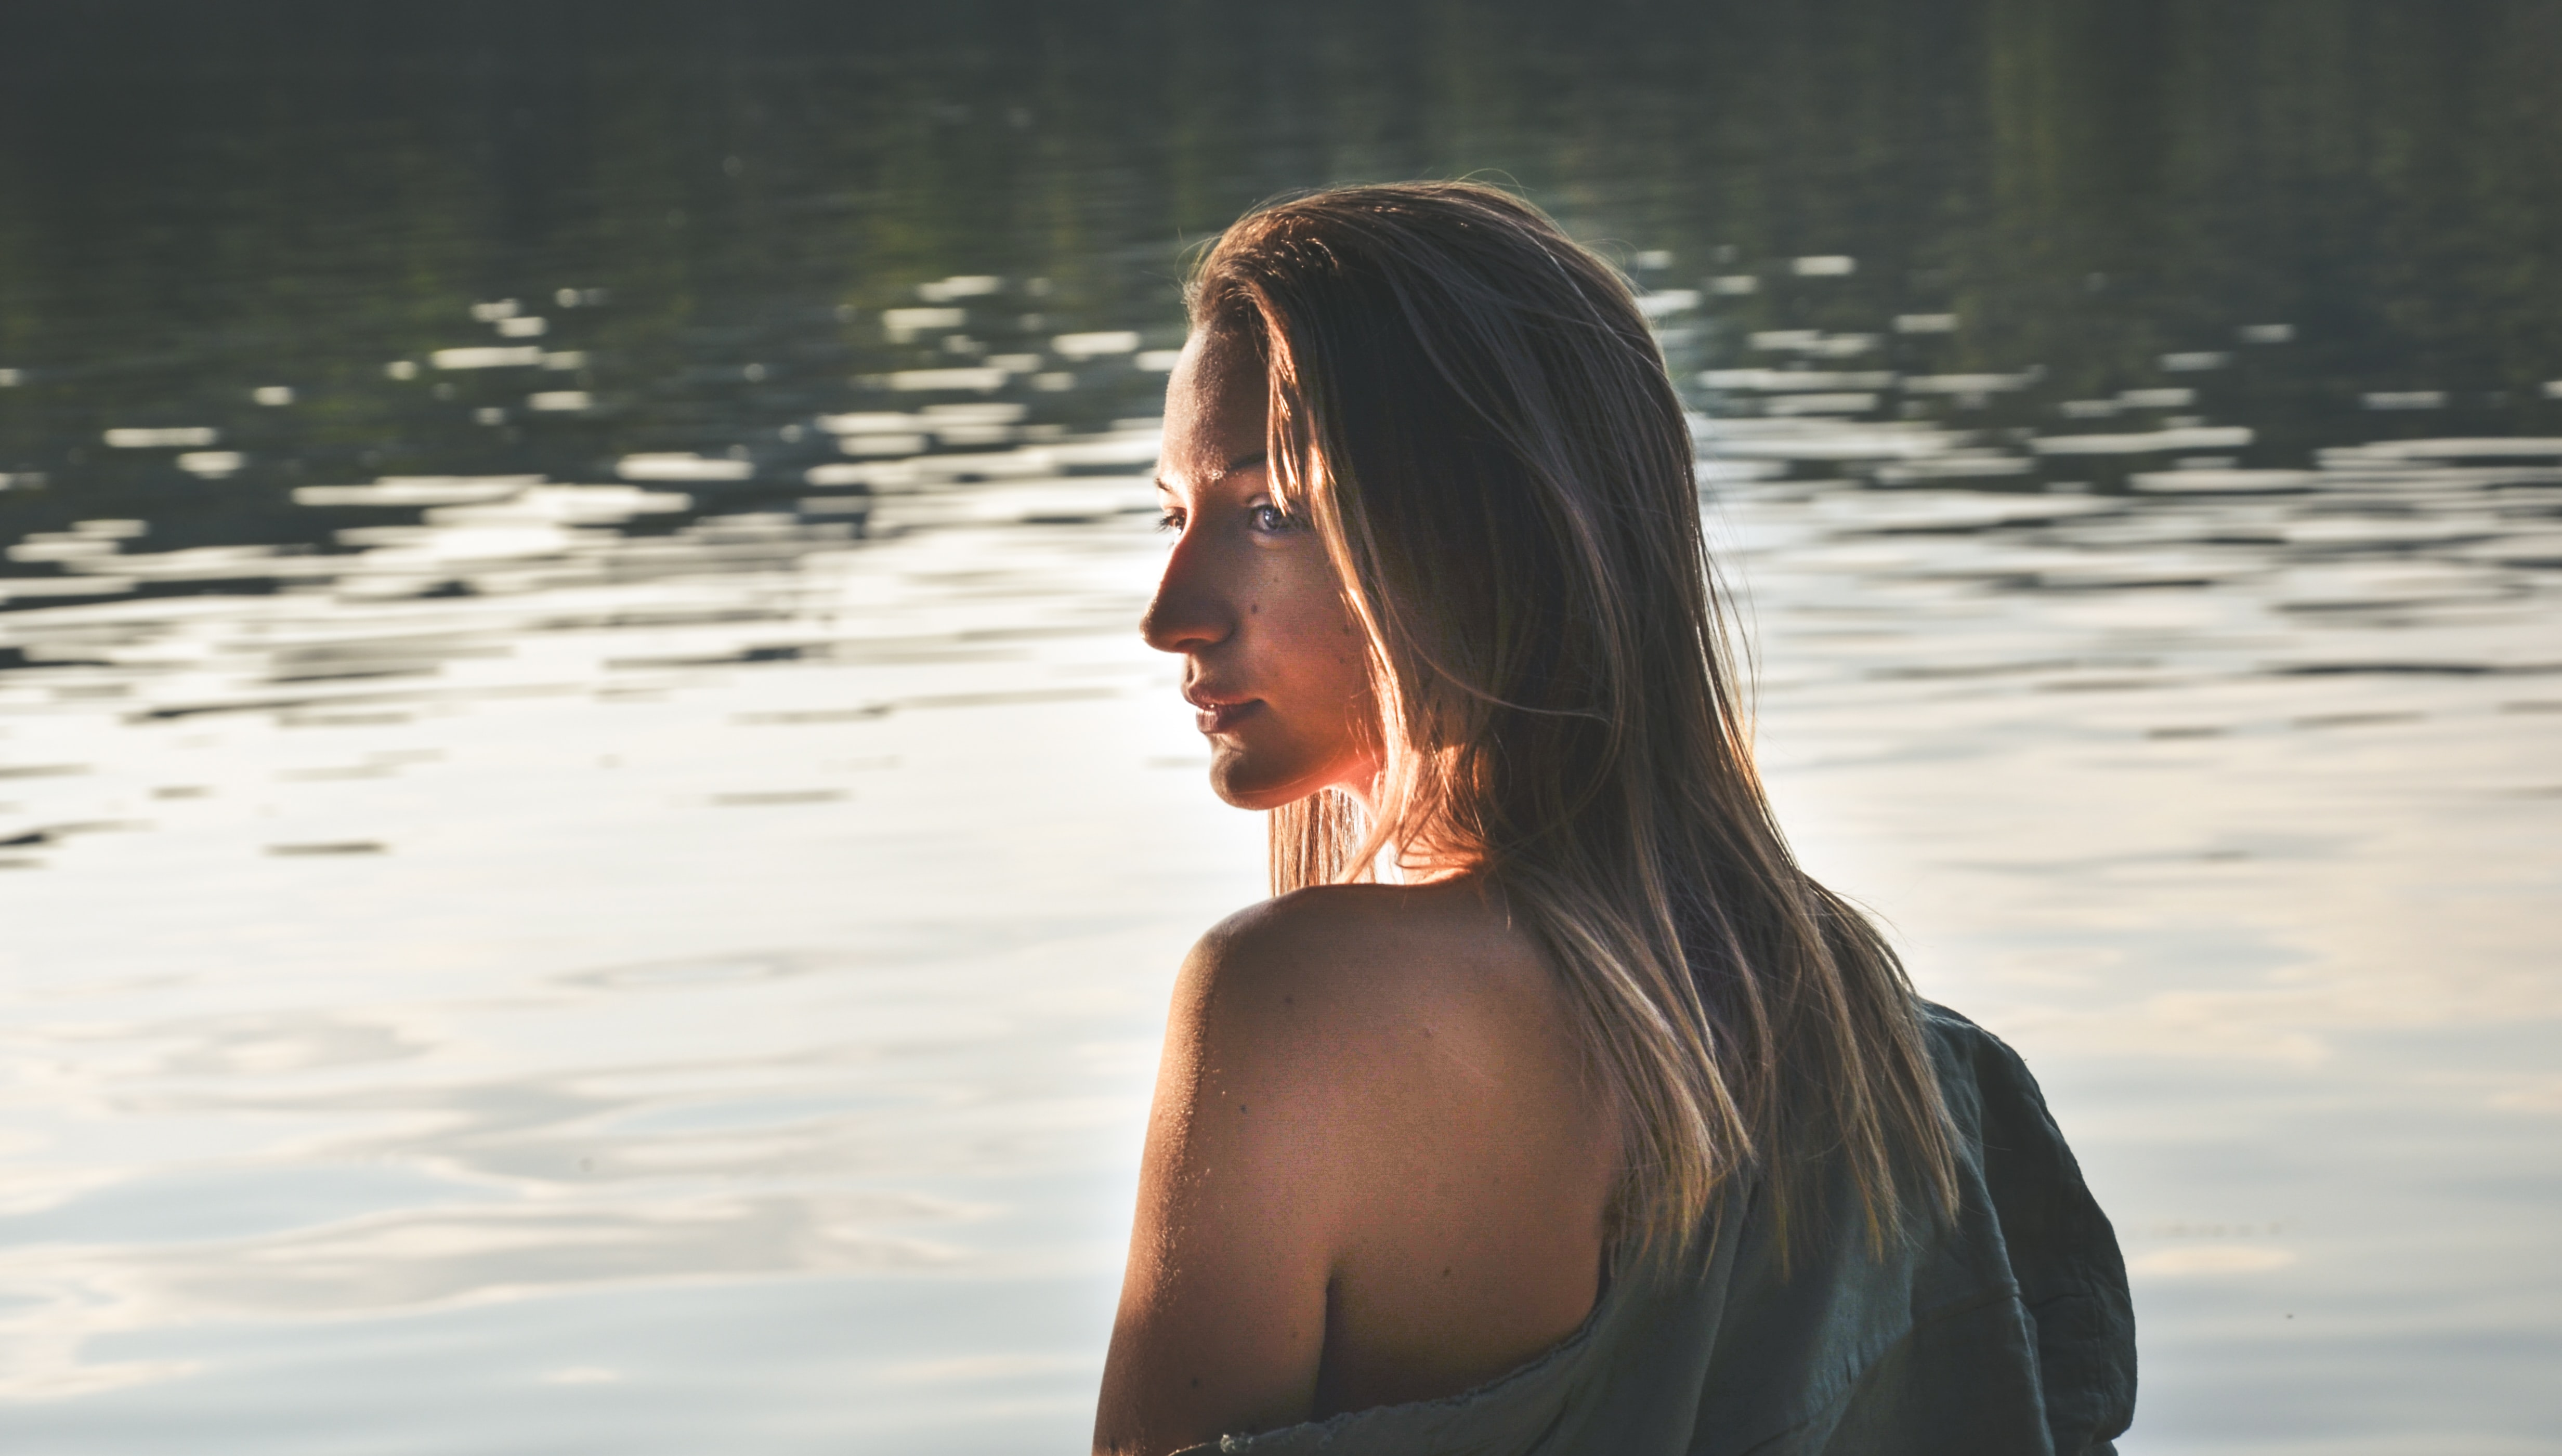 woman with blonde hair on body of water